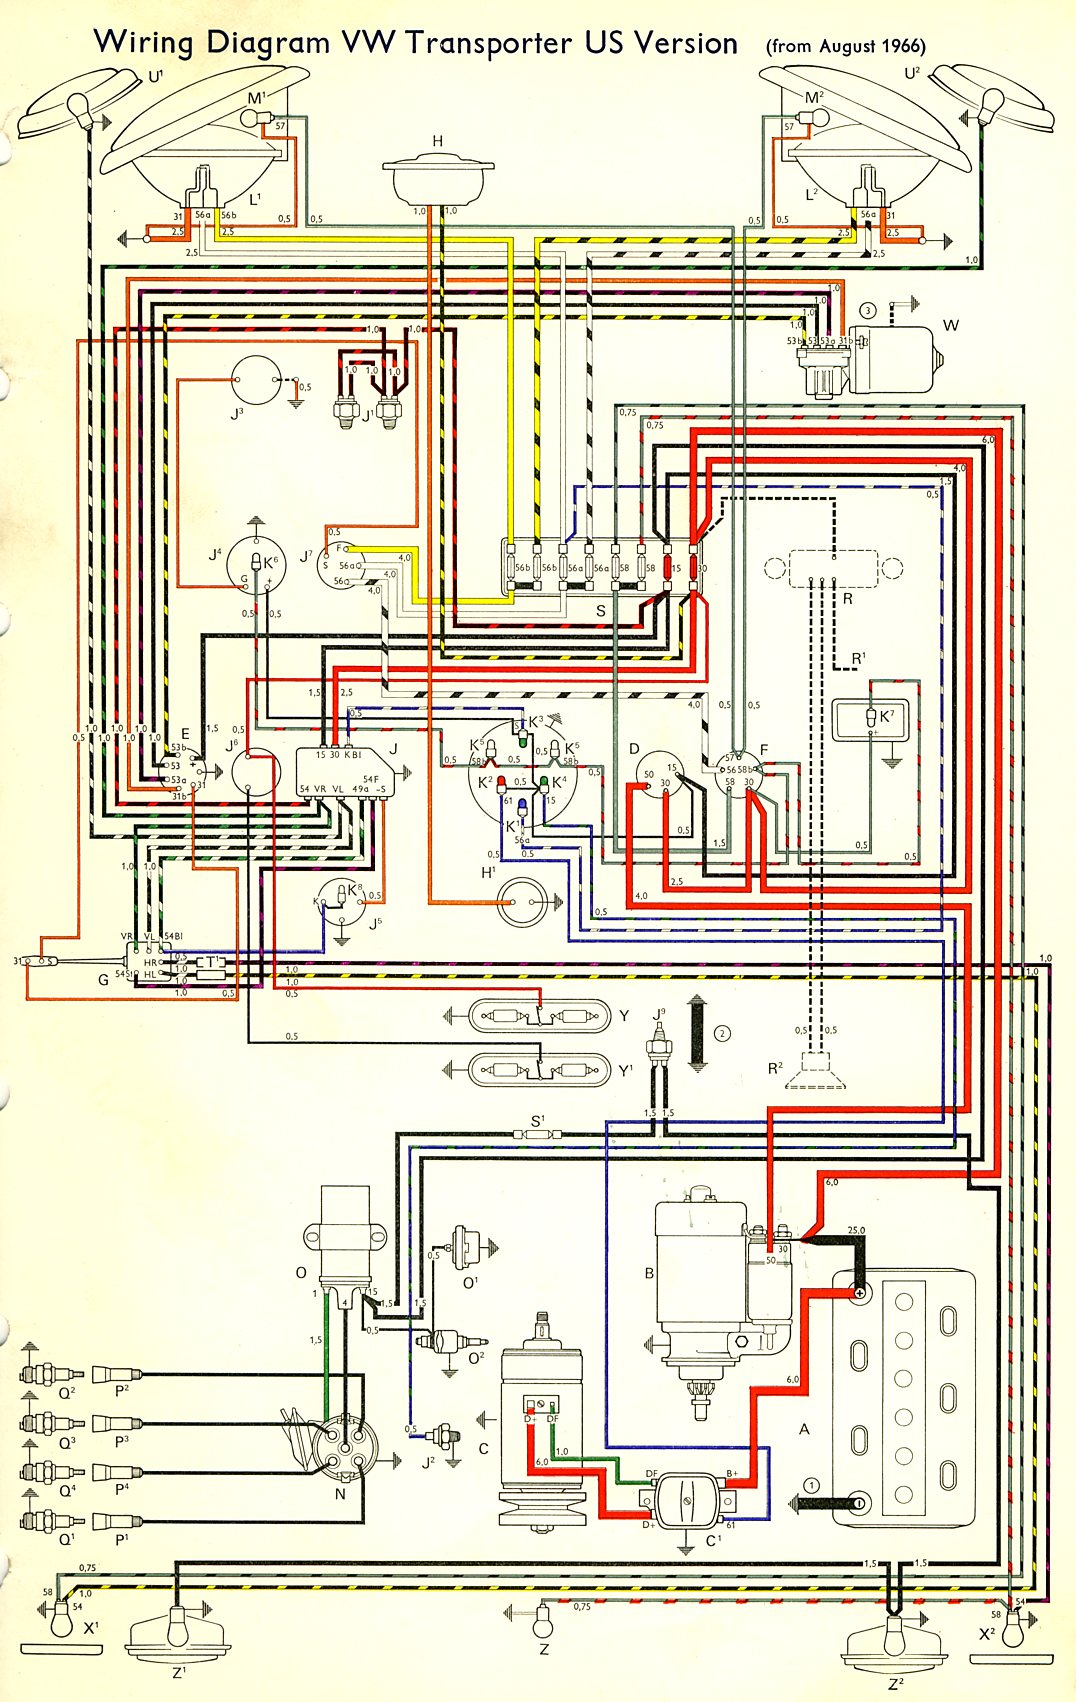 bus_67_USA 1967 bus wiring diagram (usa) thegoldenbug com 1971 vw bus wiring diagram at n-0.co